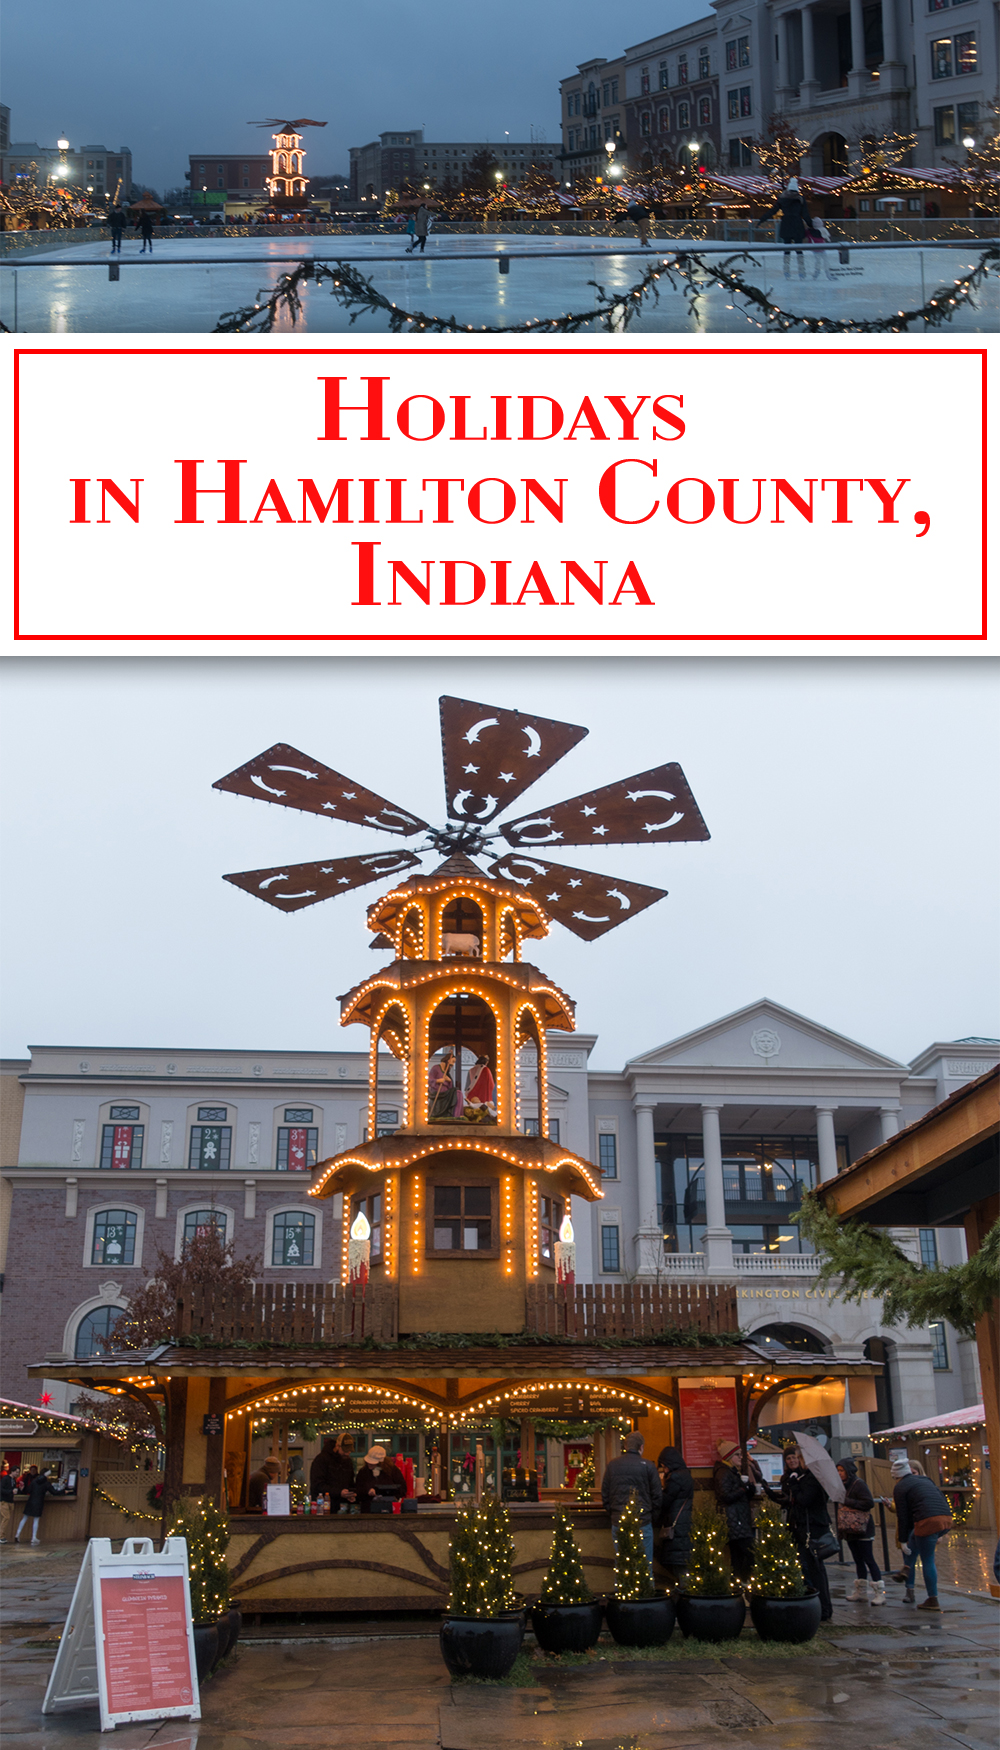 If you are looking for the perfect holiday destination in the Midwest— you'll enjoy visiting Hamilton County. Carmel, Indiana is the perfect destination! #Indiana #travel #holidays #Christmas #travelguide #USAtravel #midwest #Markets